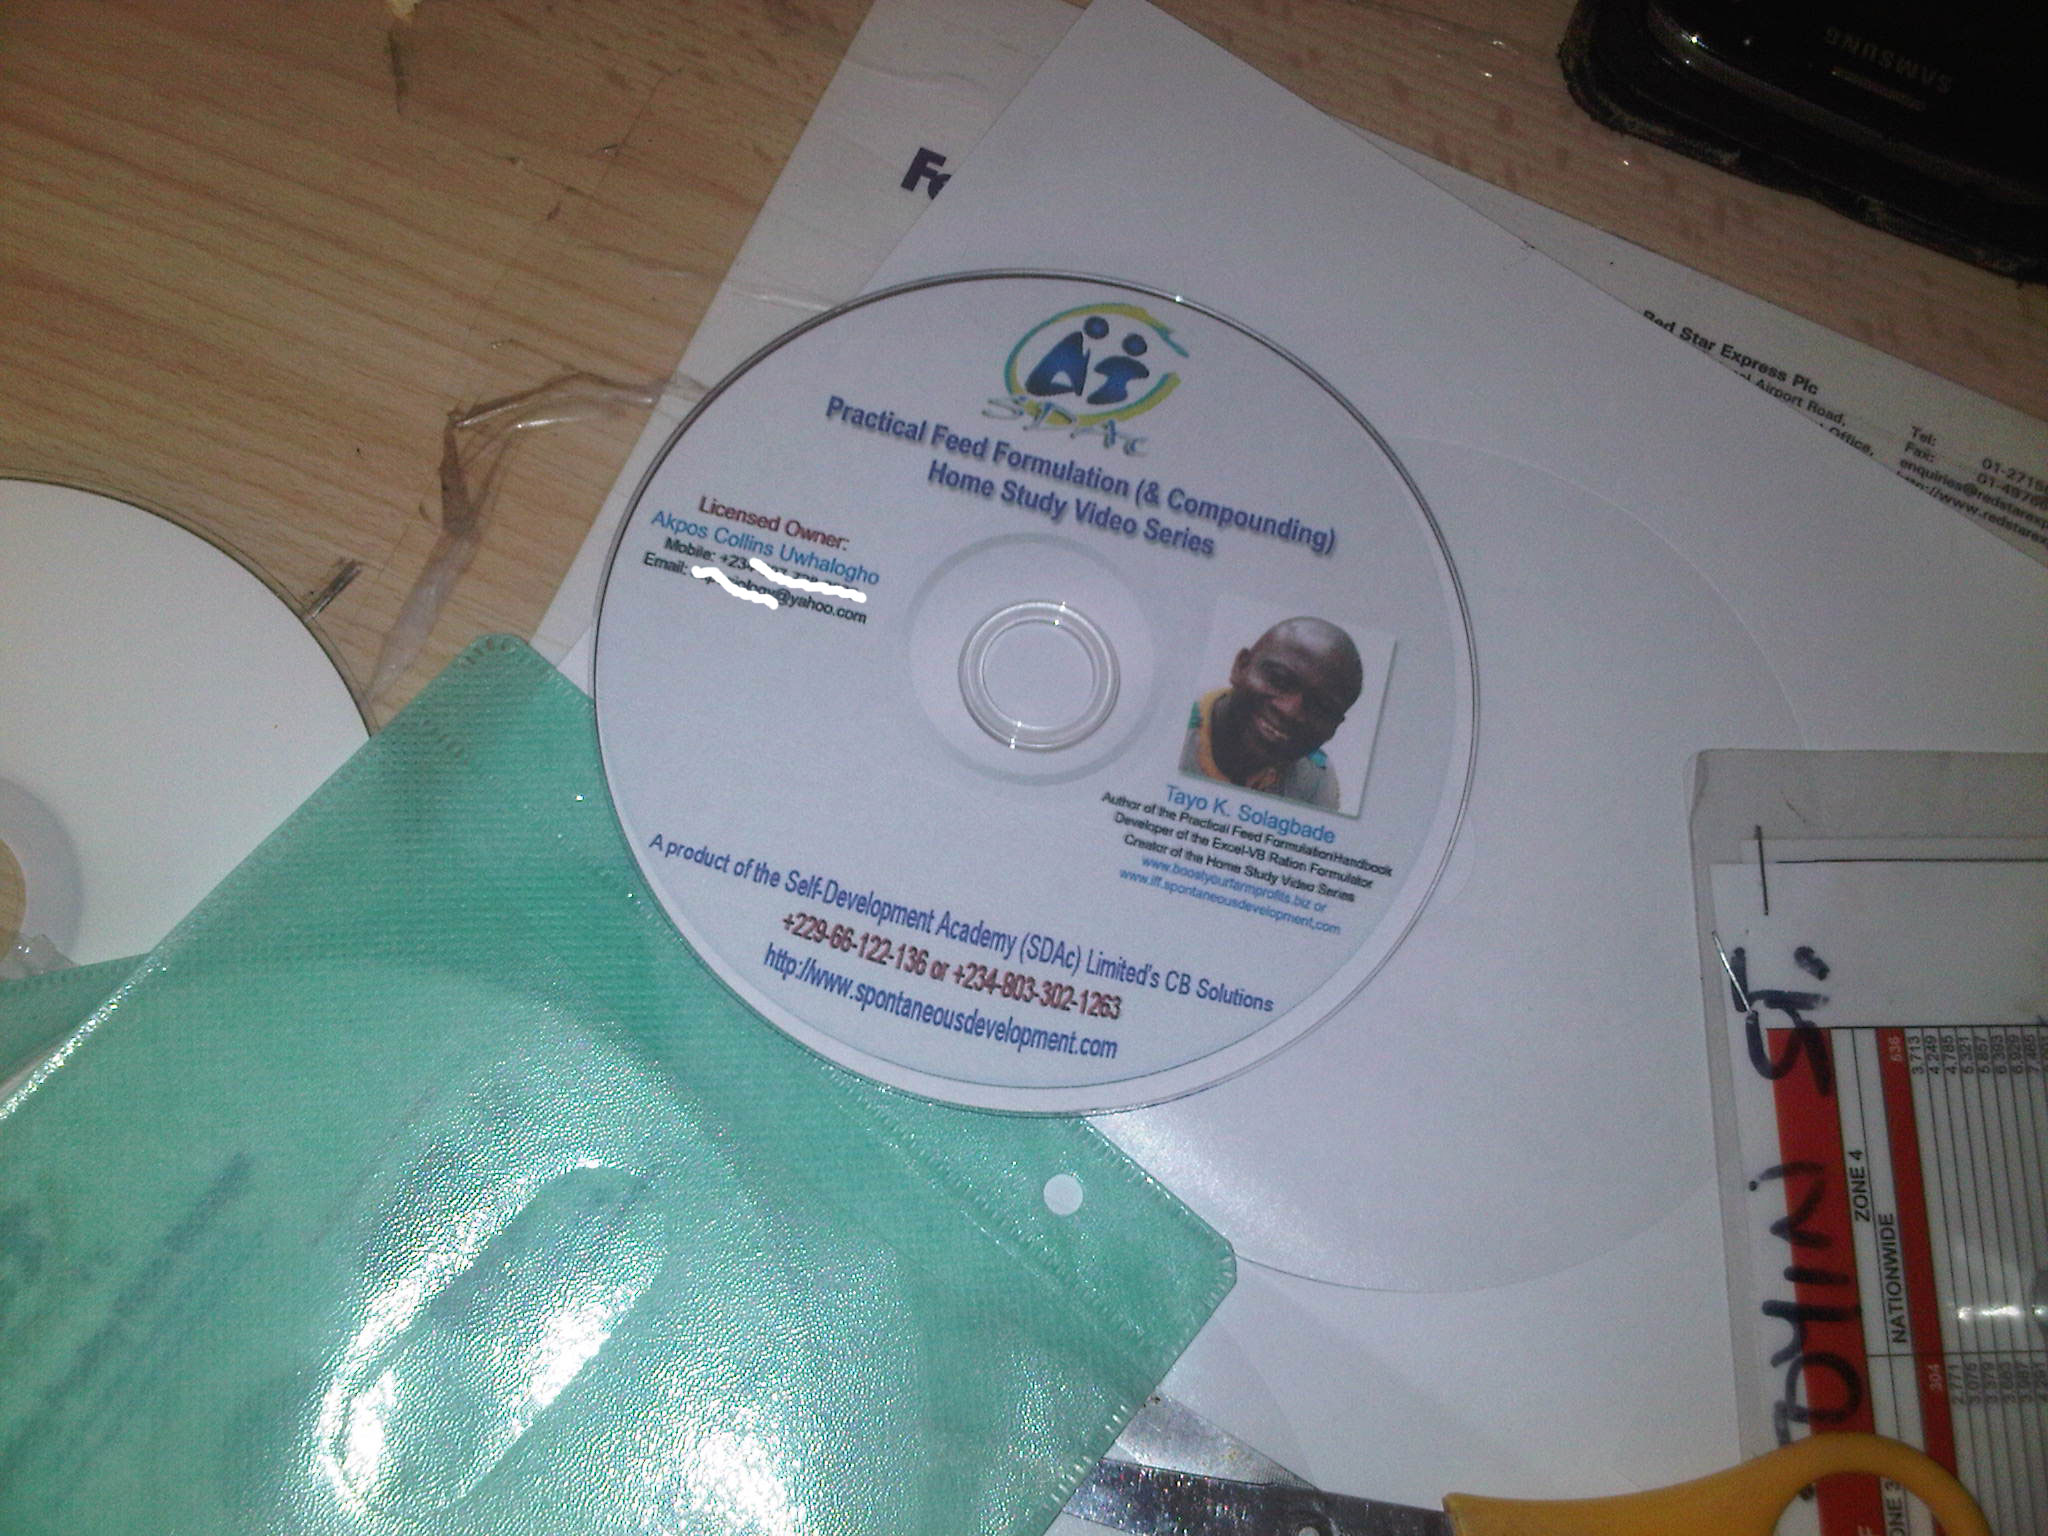 My new Practical Feed Formulation (& Compounding) Home Study Video Series DVD